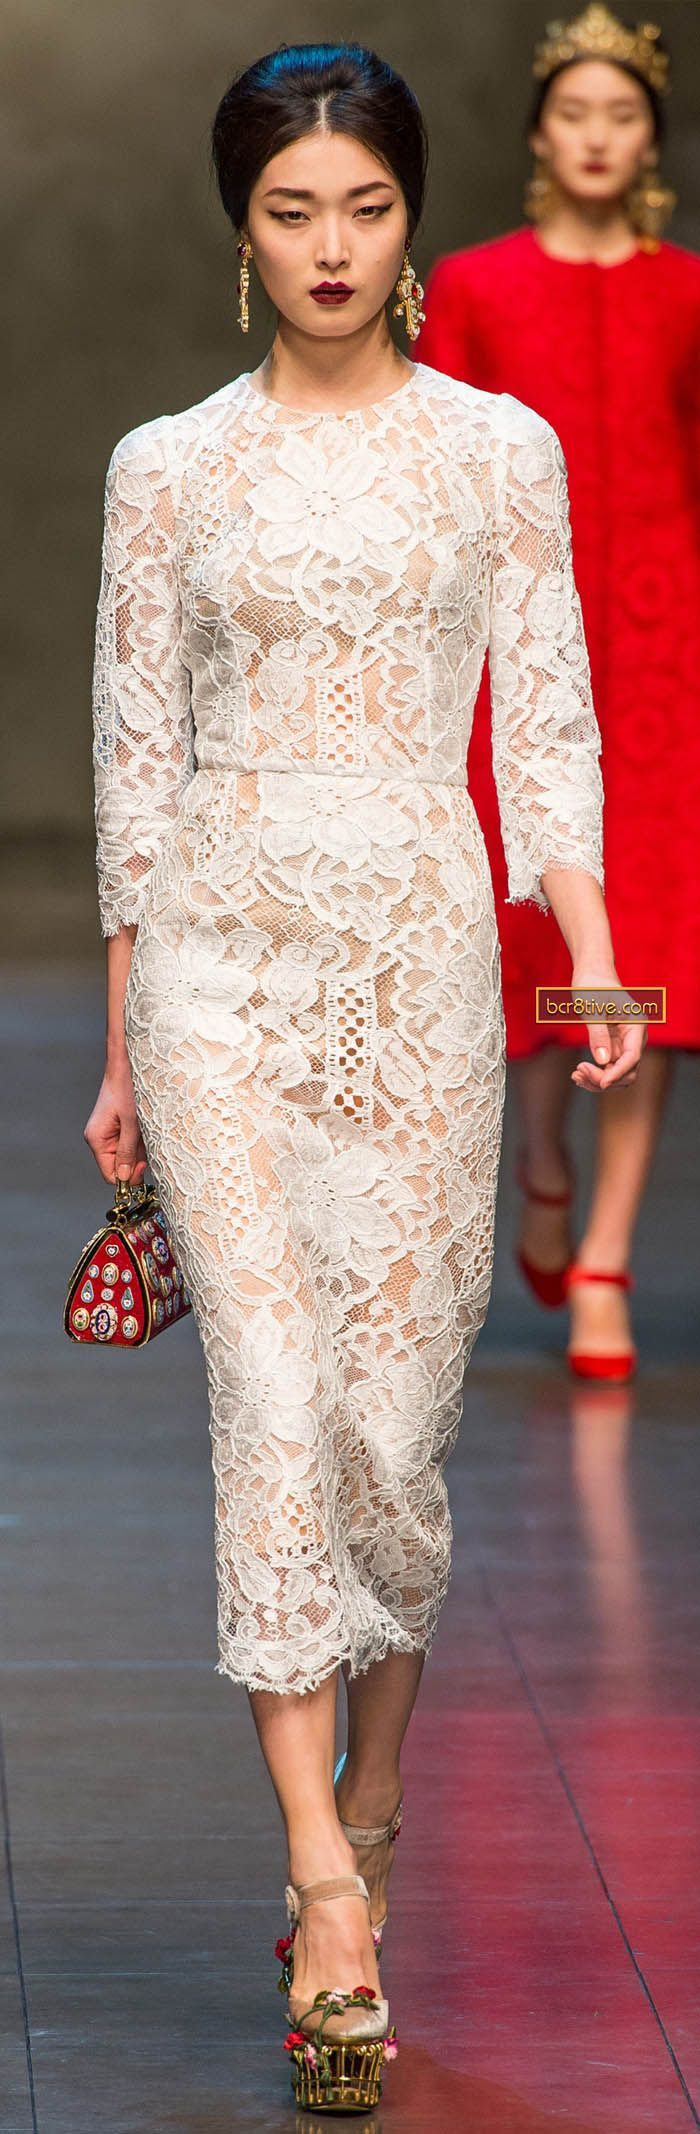 intricate lace :: dolce & gabbana fall/winter 2013-14 [ via bcr8tive.com ]